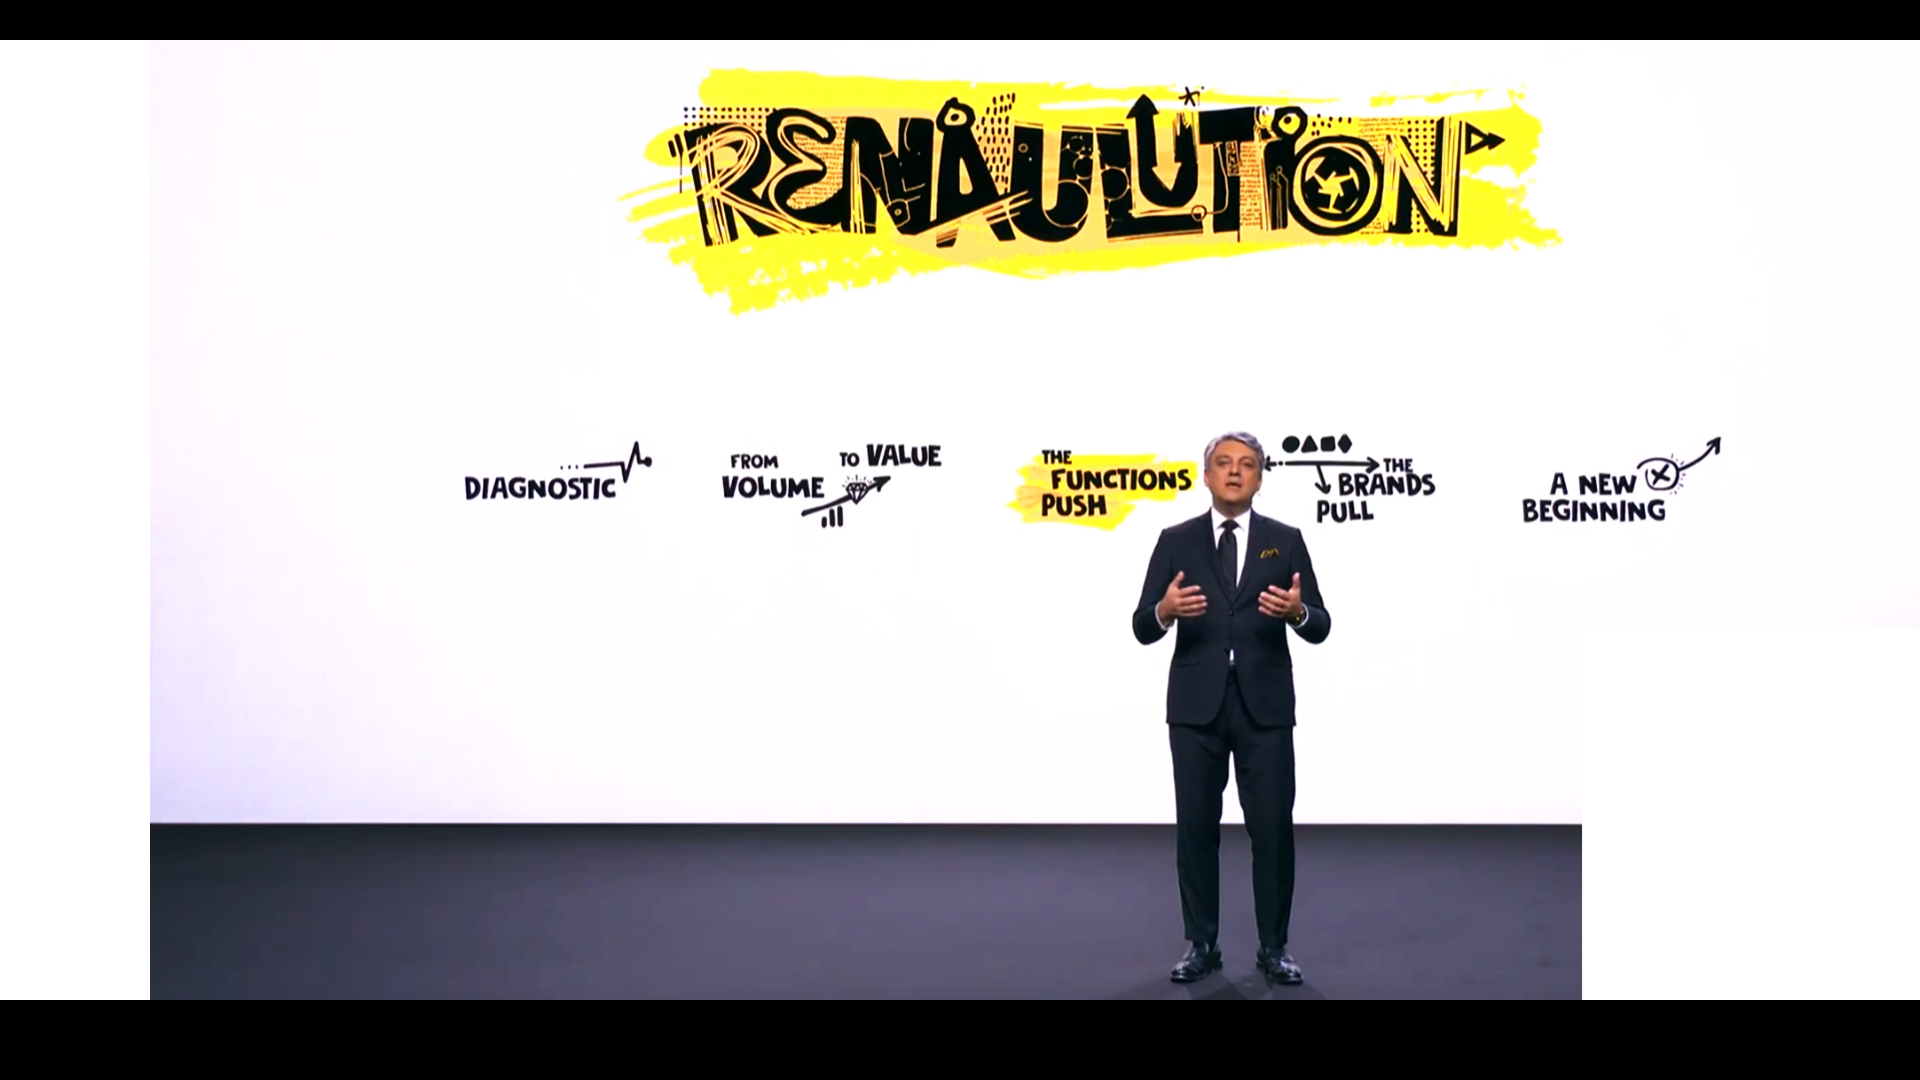 Renaulution - 2021 - plan - functions push - Groupe Renault